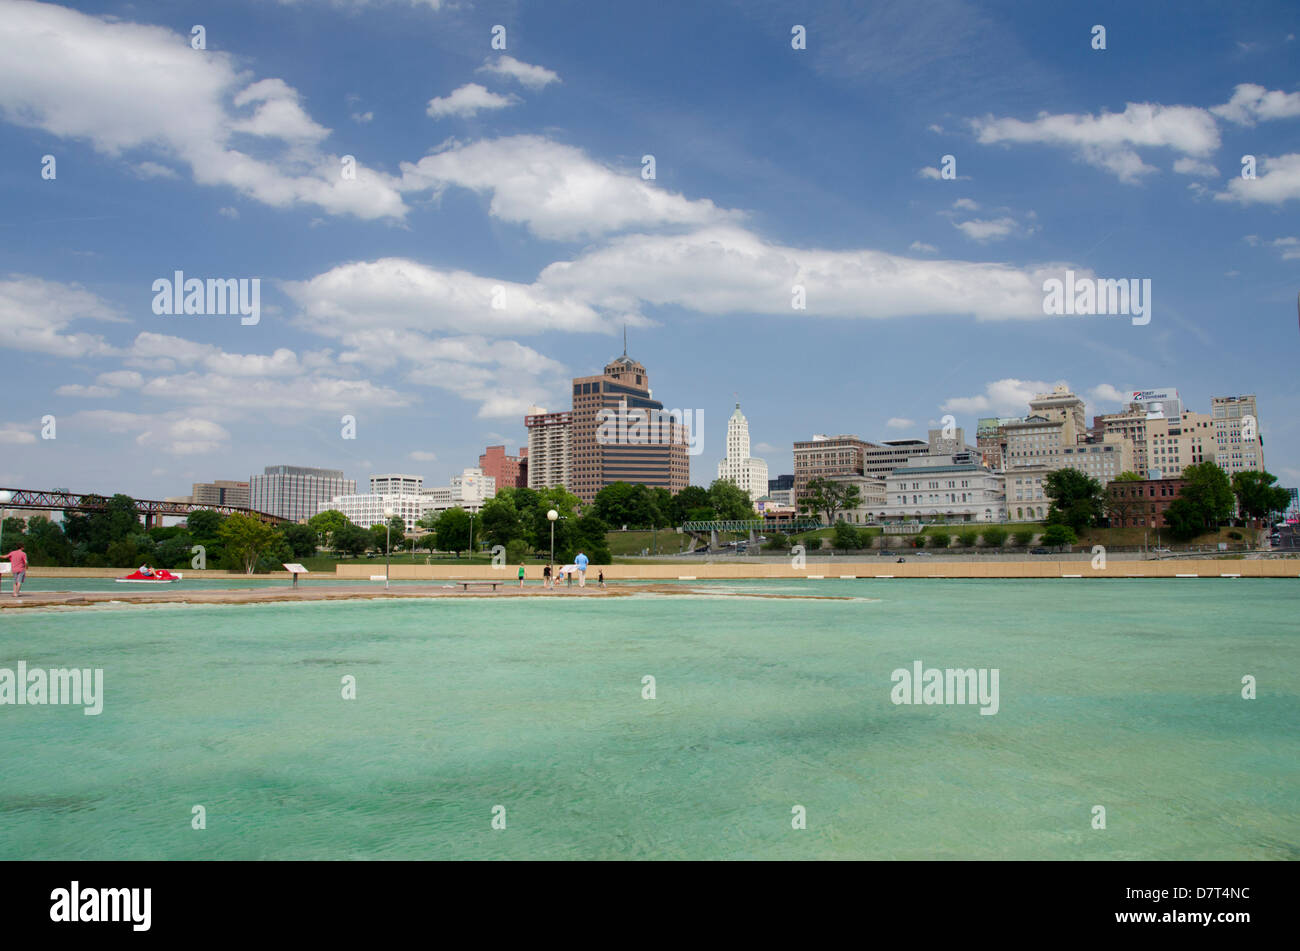 Tennessee, Memphis. Mud Island River Park. 'Gulf of Mexico' recreation pond. Memphis city skyline in distance. - Stock Image